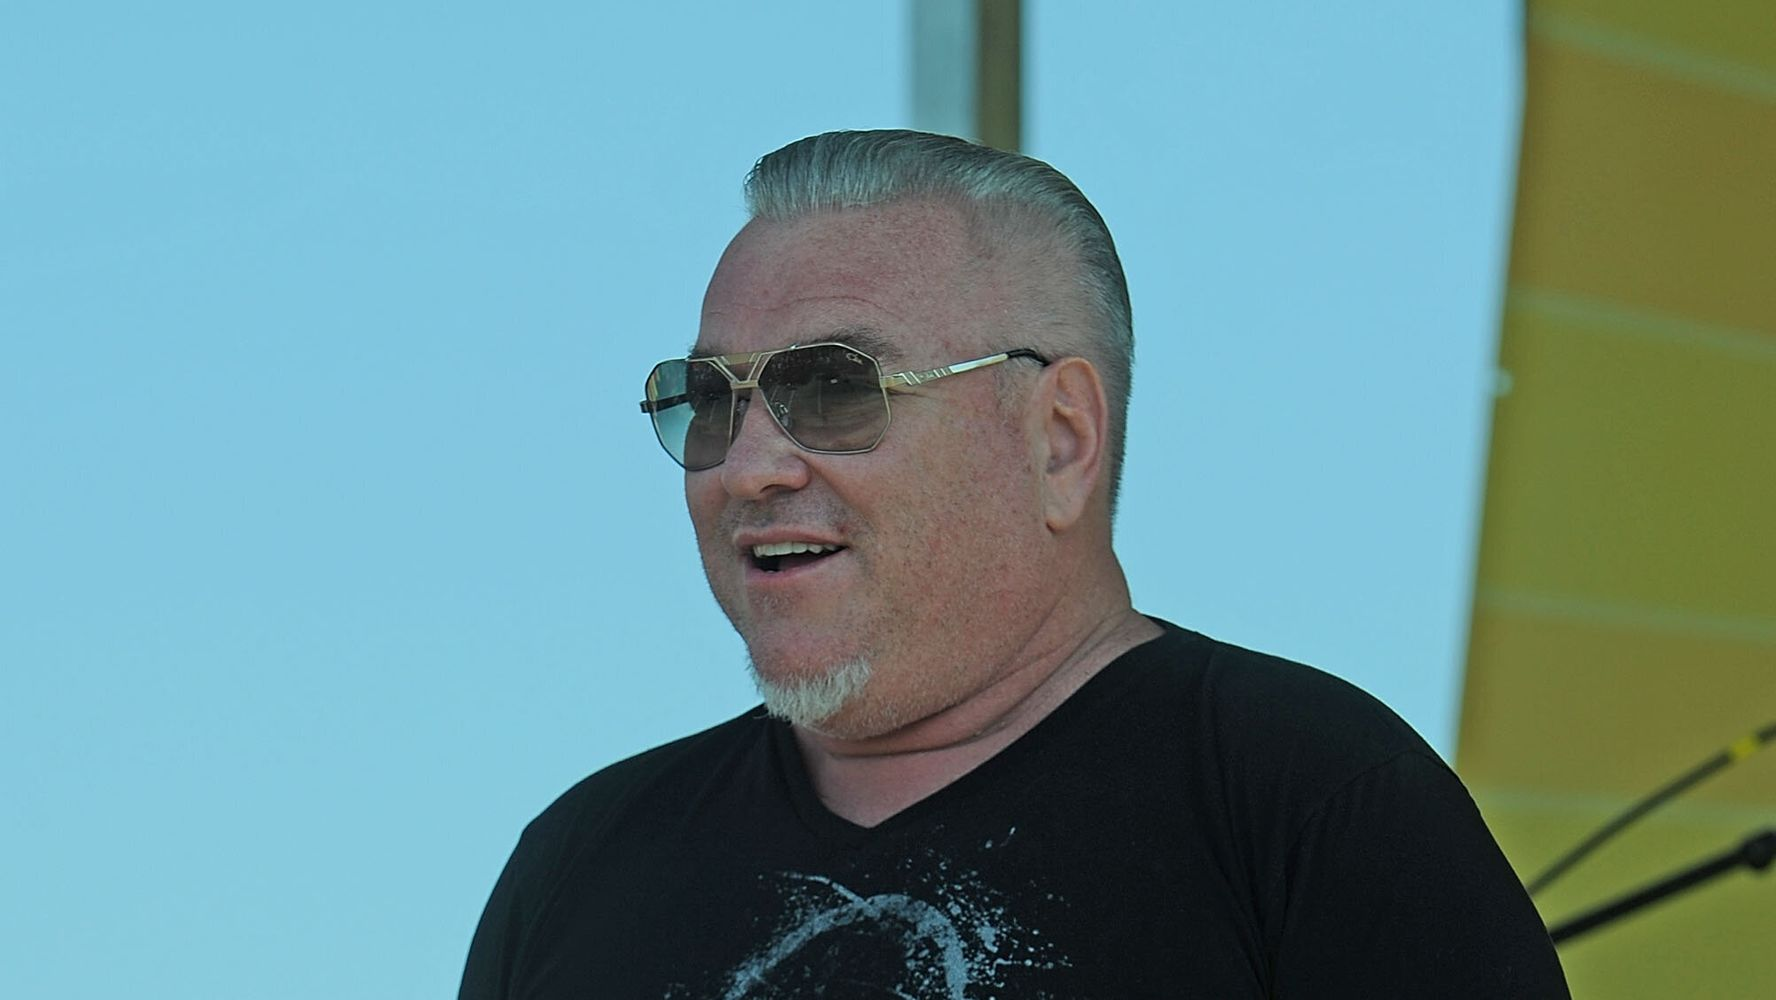 Smash Mouth Disapproves Of Straight Pride Parades In Now-Viral Tweet